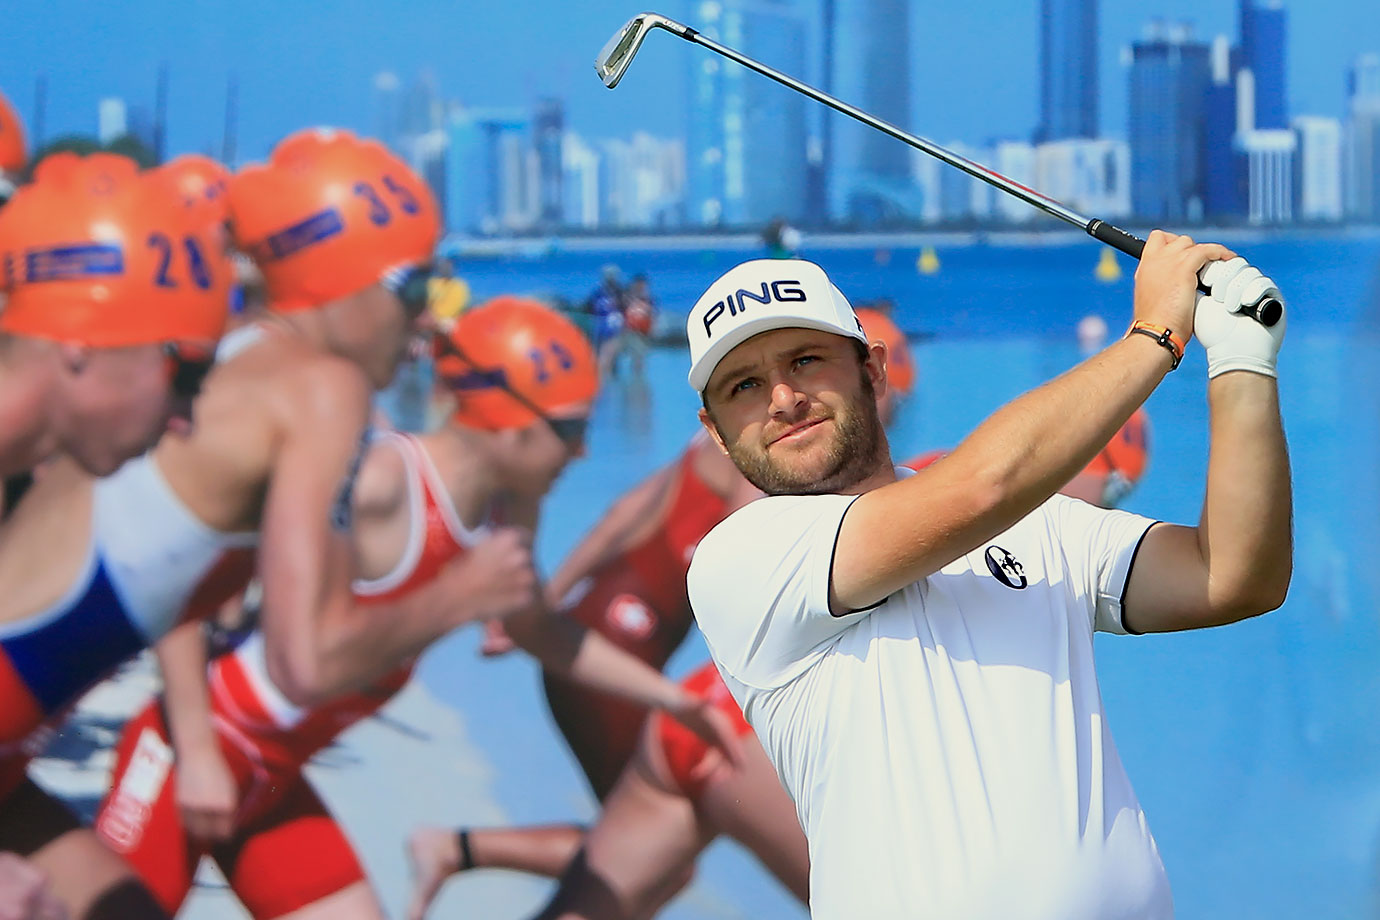 Andy Sullivan appears unfazed by a stampede of swimmers on the billboard behind him as he plays his tee shot on the 15th hole during the second round of the 2016 Abu Dhabi HSBC Golf Championship.